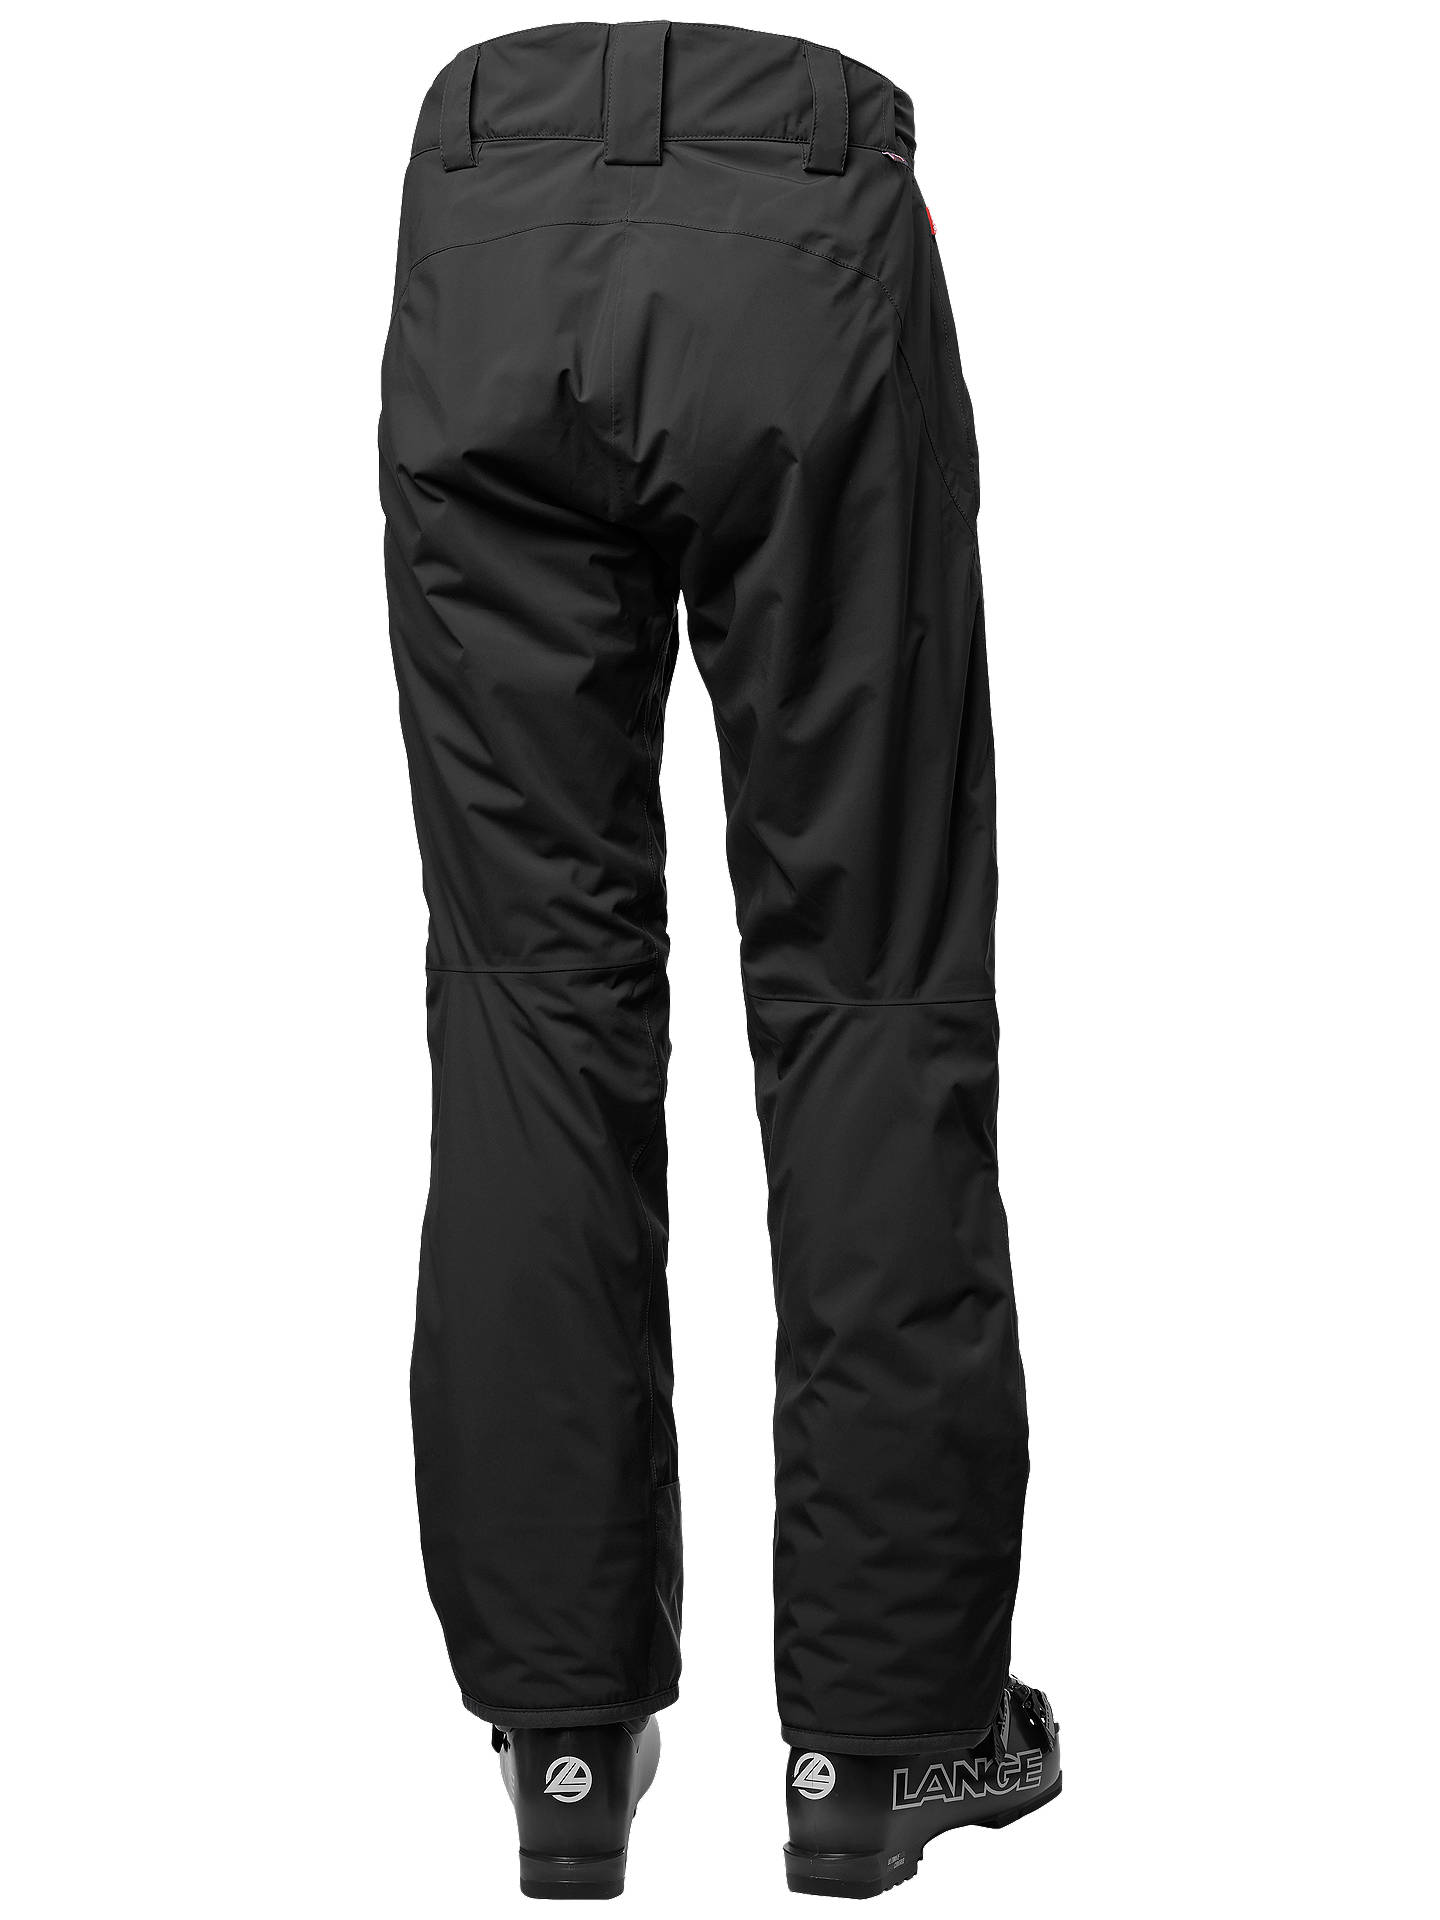 870e317f9c6 Helly Hansen Velocity Insulated Men's Ski Pants, Black at John Lewis ...